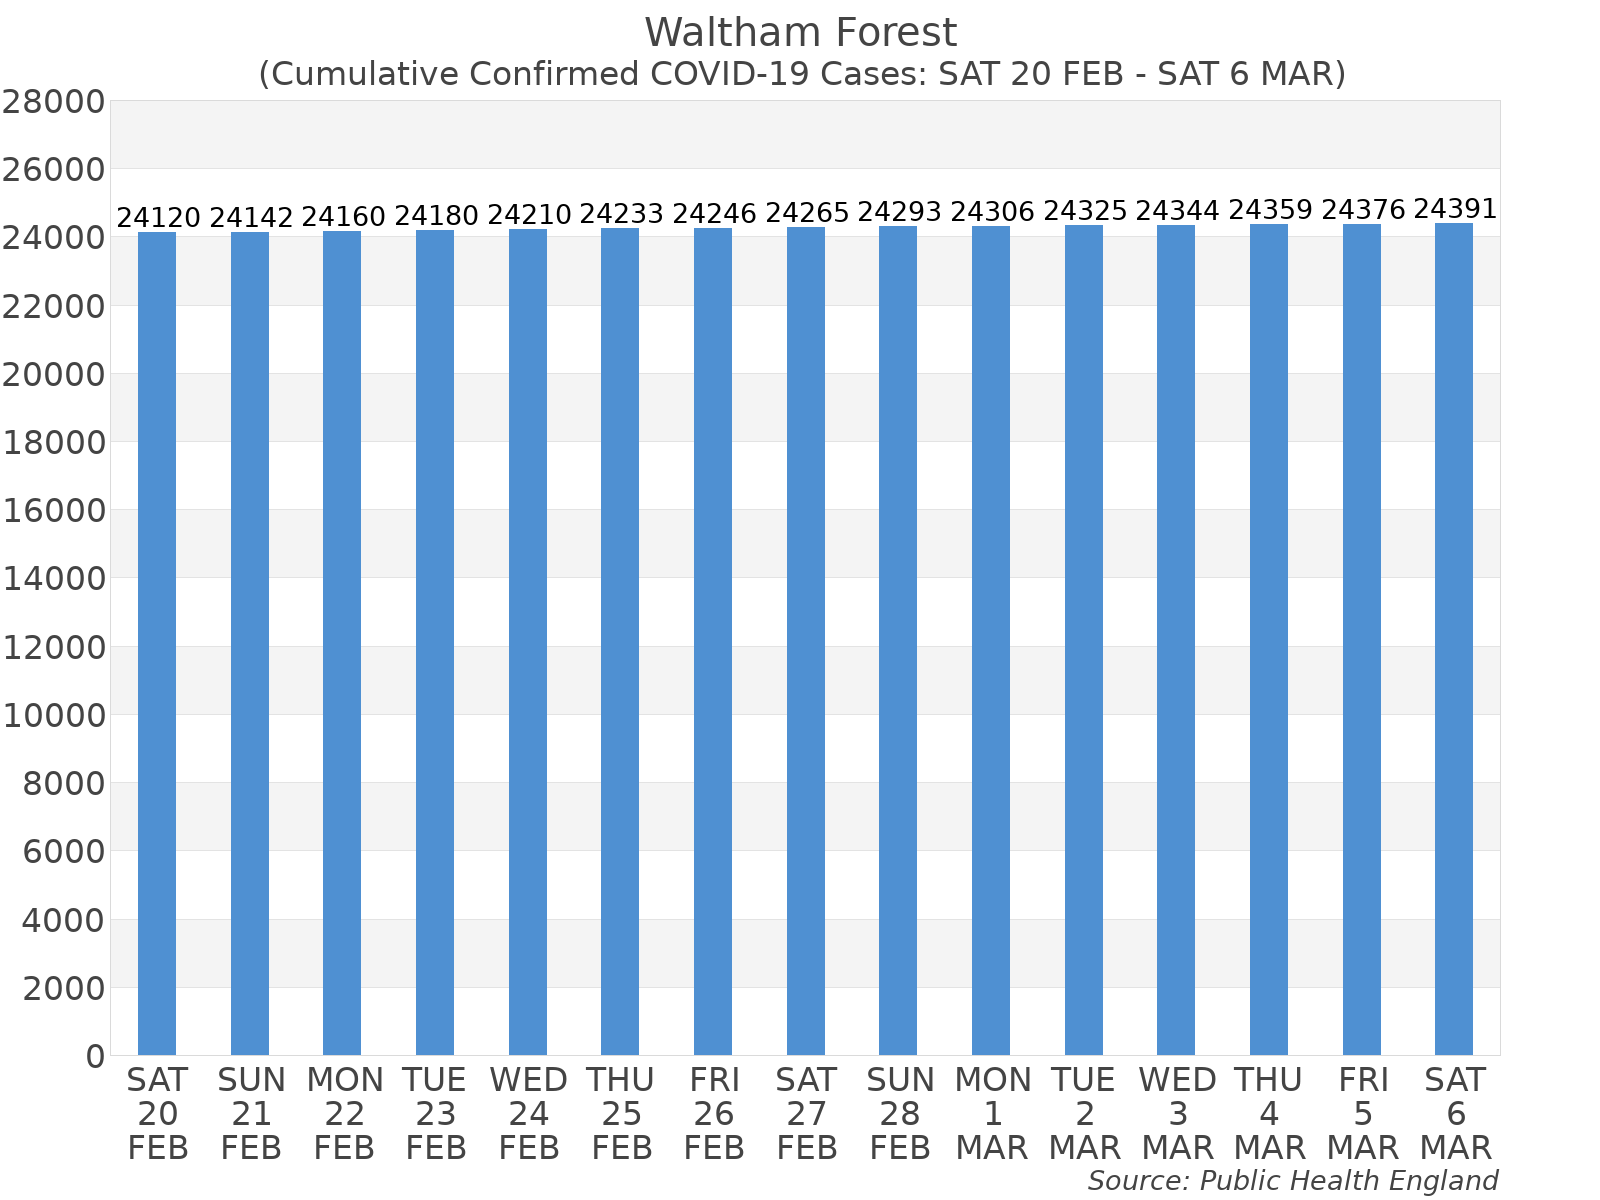 Graph tracking the number of confirmed coronavirus (COVID-19) cases where the patient lives within the Waltham Forest Upper Tier Local Authority Area.